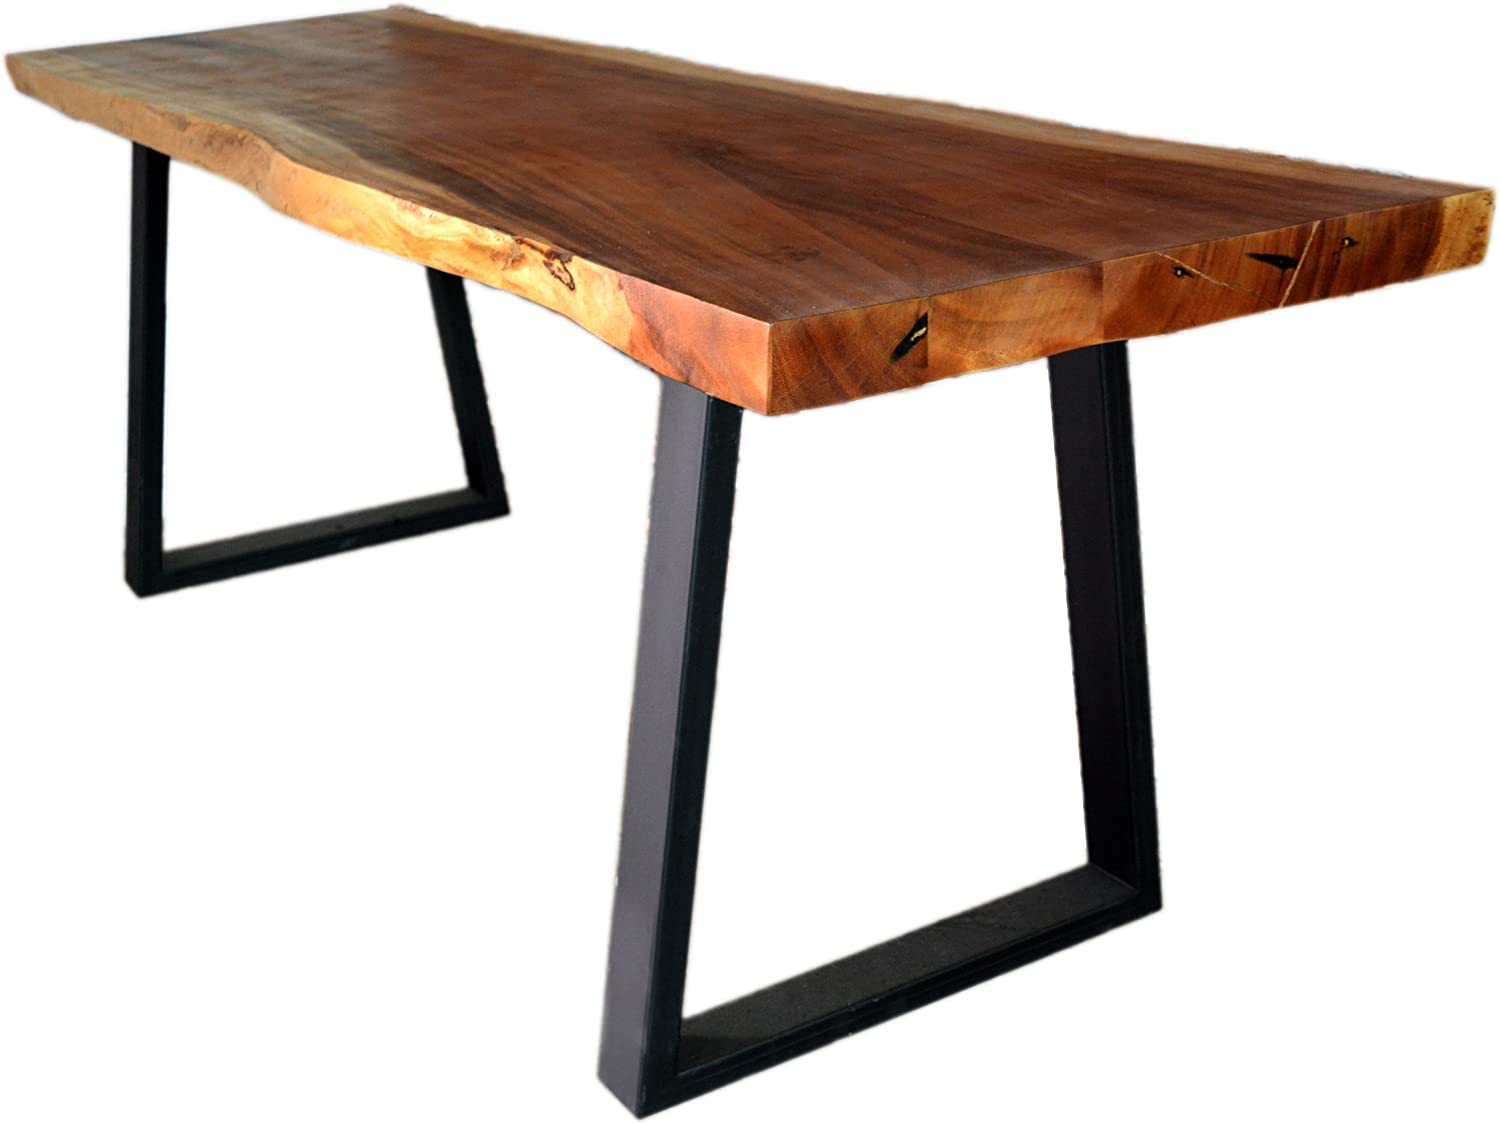 Amazon Com Roro Live Edge Solid Wood Slab Acacia Dining Table Executive Desk 72 Inch 6 Foot Tables